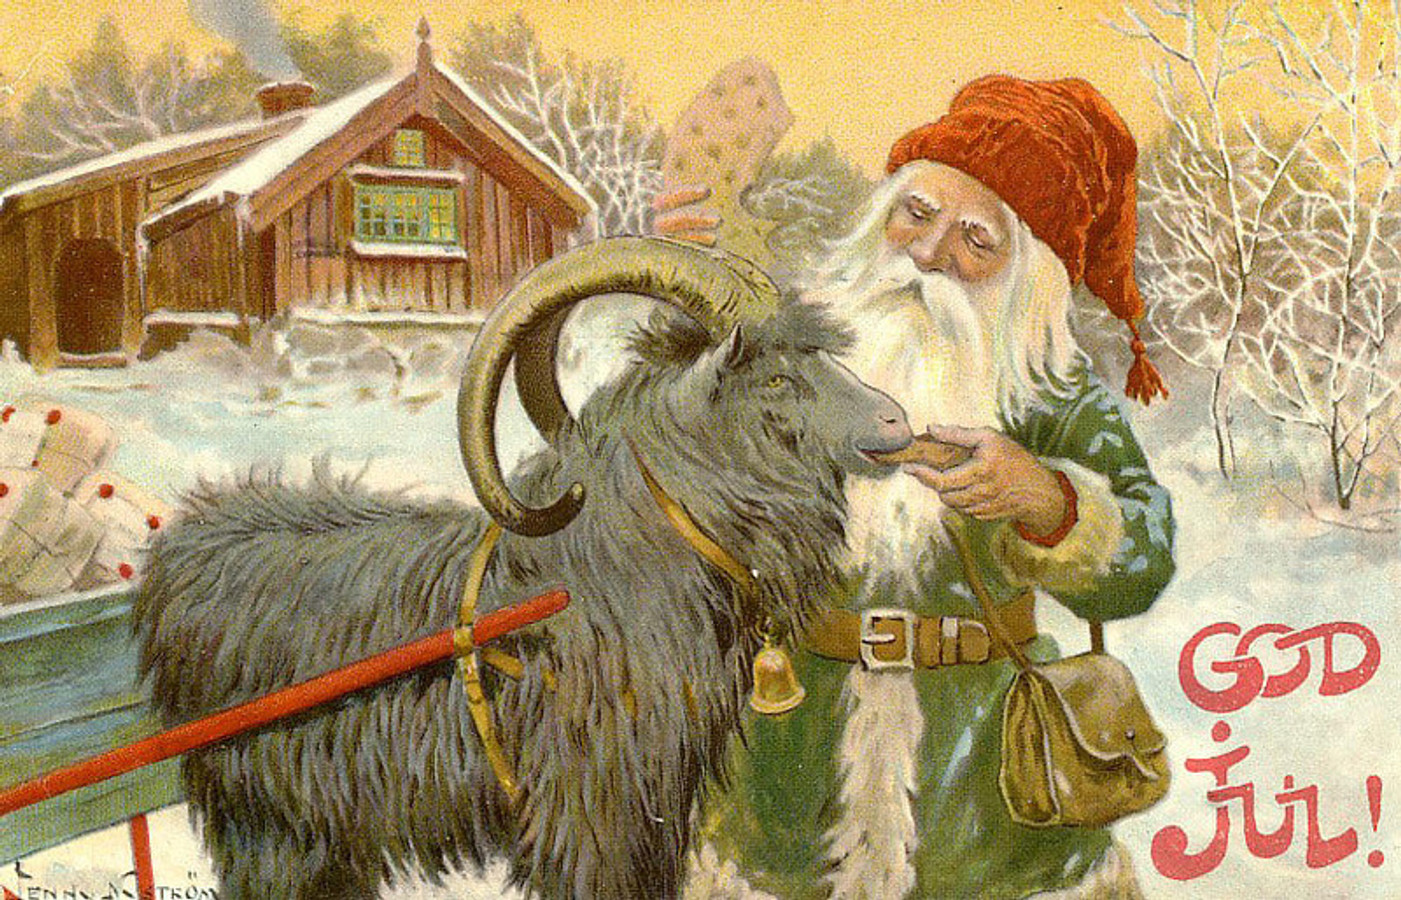 Ditch the Reindeer: it's the Year of the Yule Goat